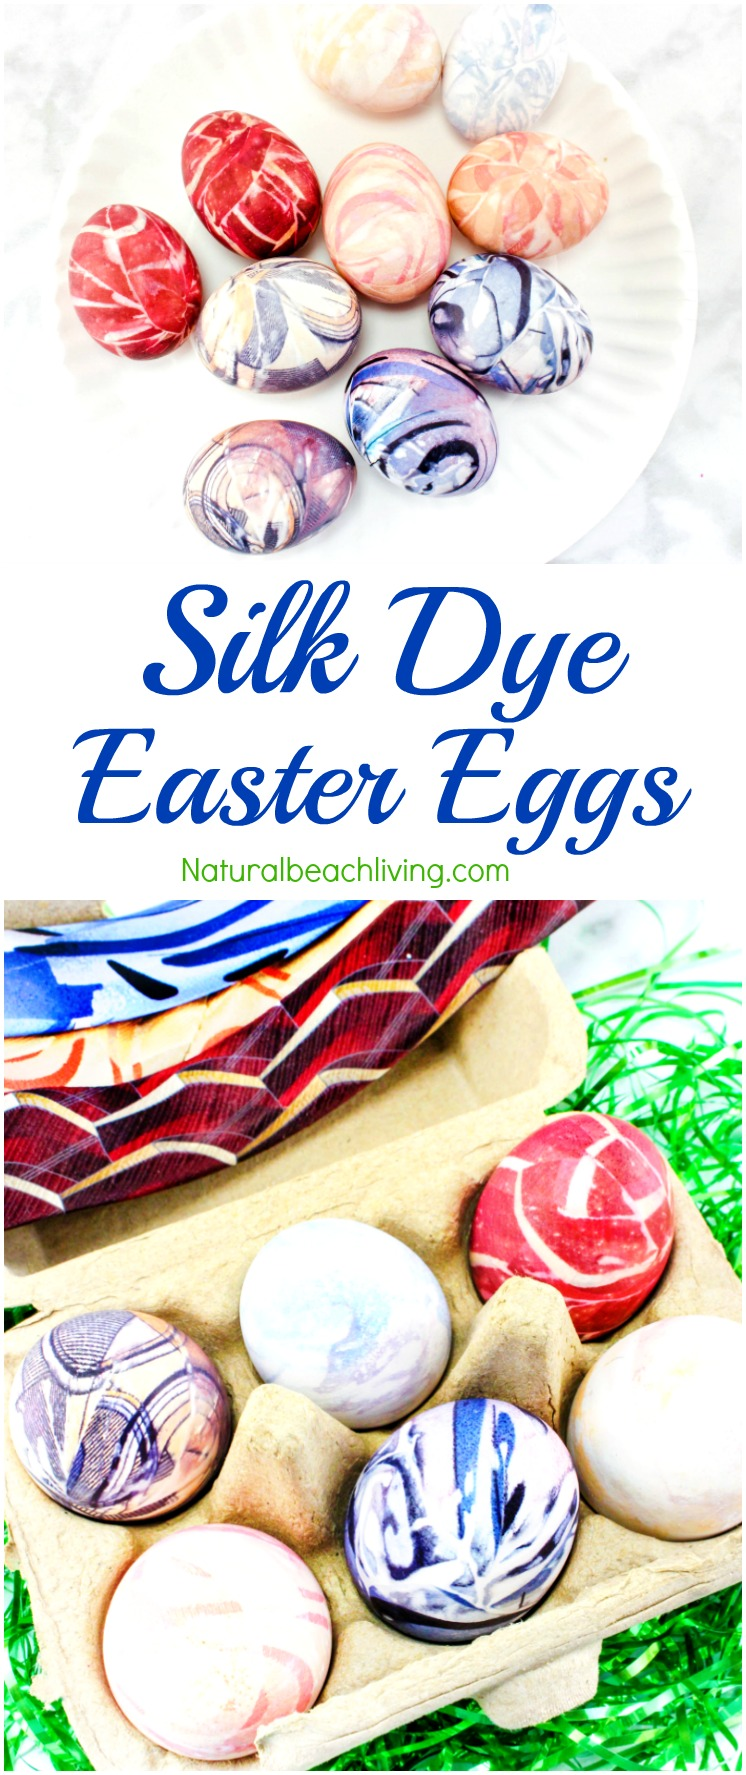 How to Silk Dye Easter Eggs Perfectly, Tie Dye Easter Eggs and creative ways to dye eggs, Silk Dyed Eggs, Easter Crafts for kids, One of a kind Beautiful Easter Egg Coloring. Easy Easter Egg Ideas for adults and kids